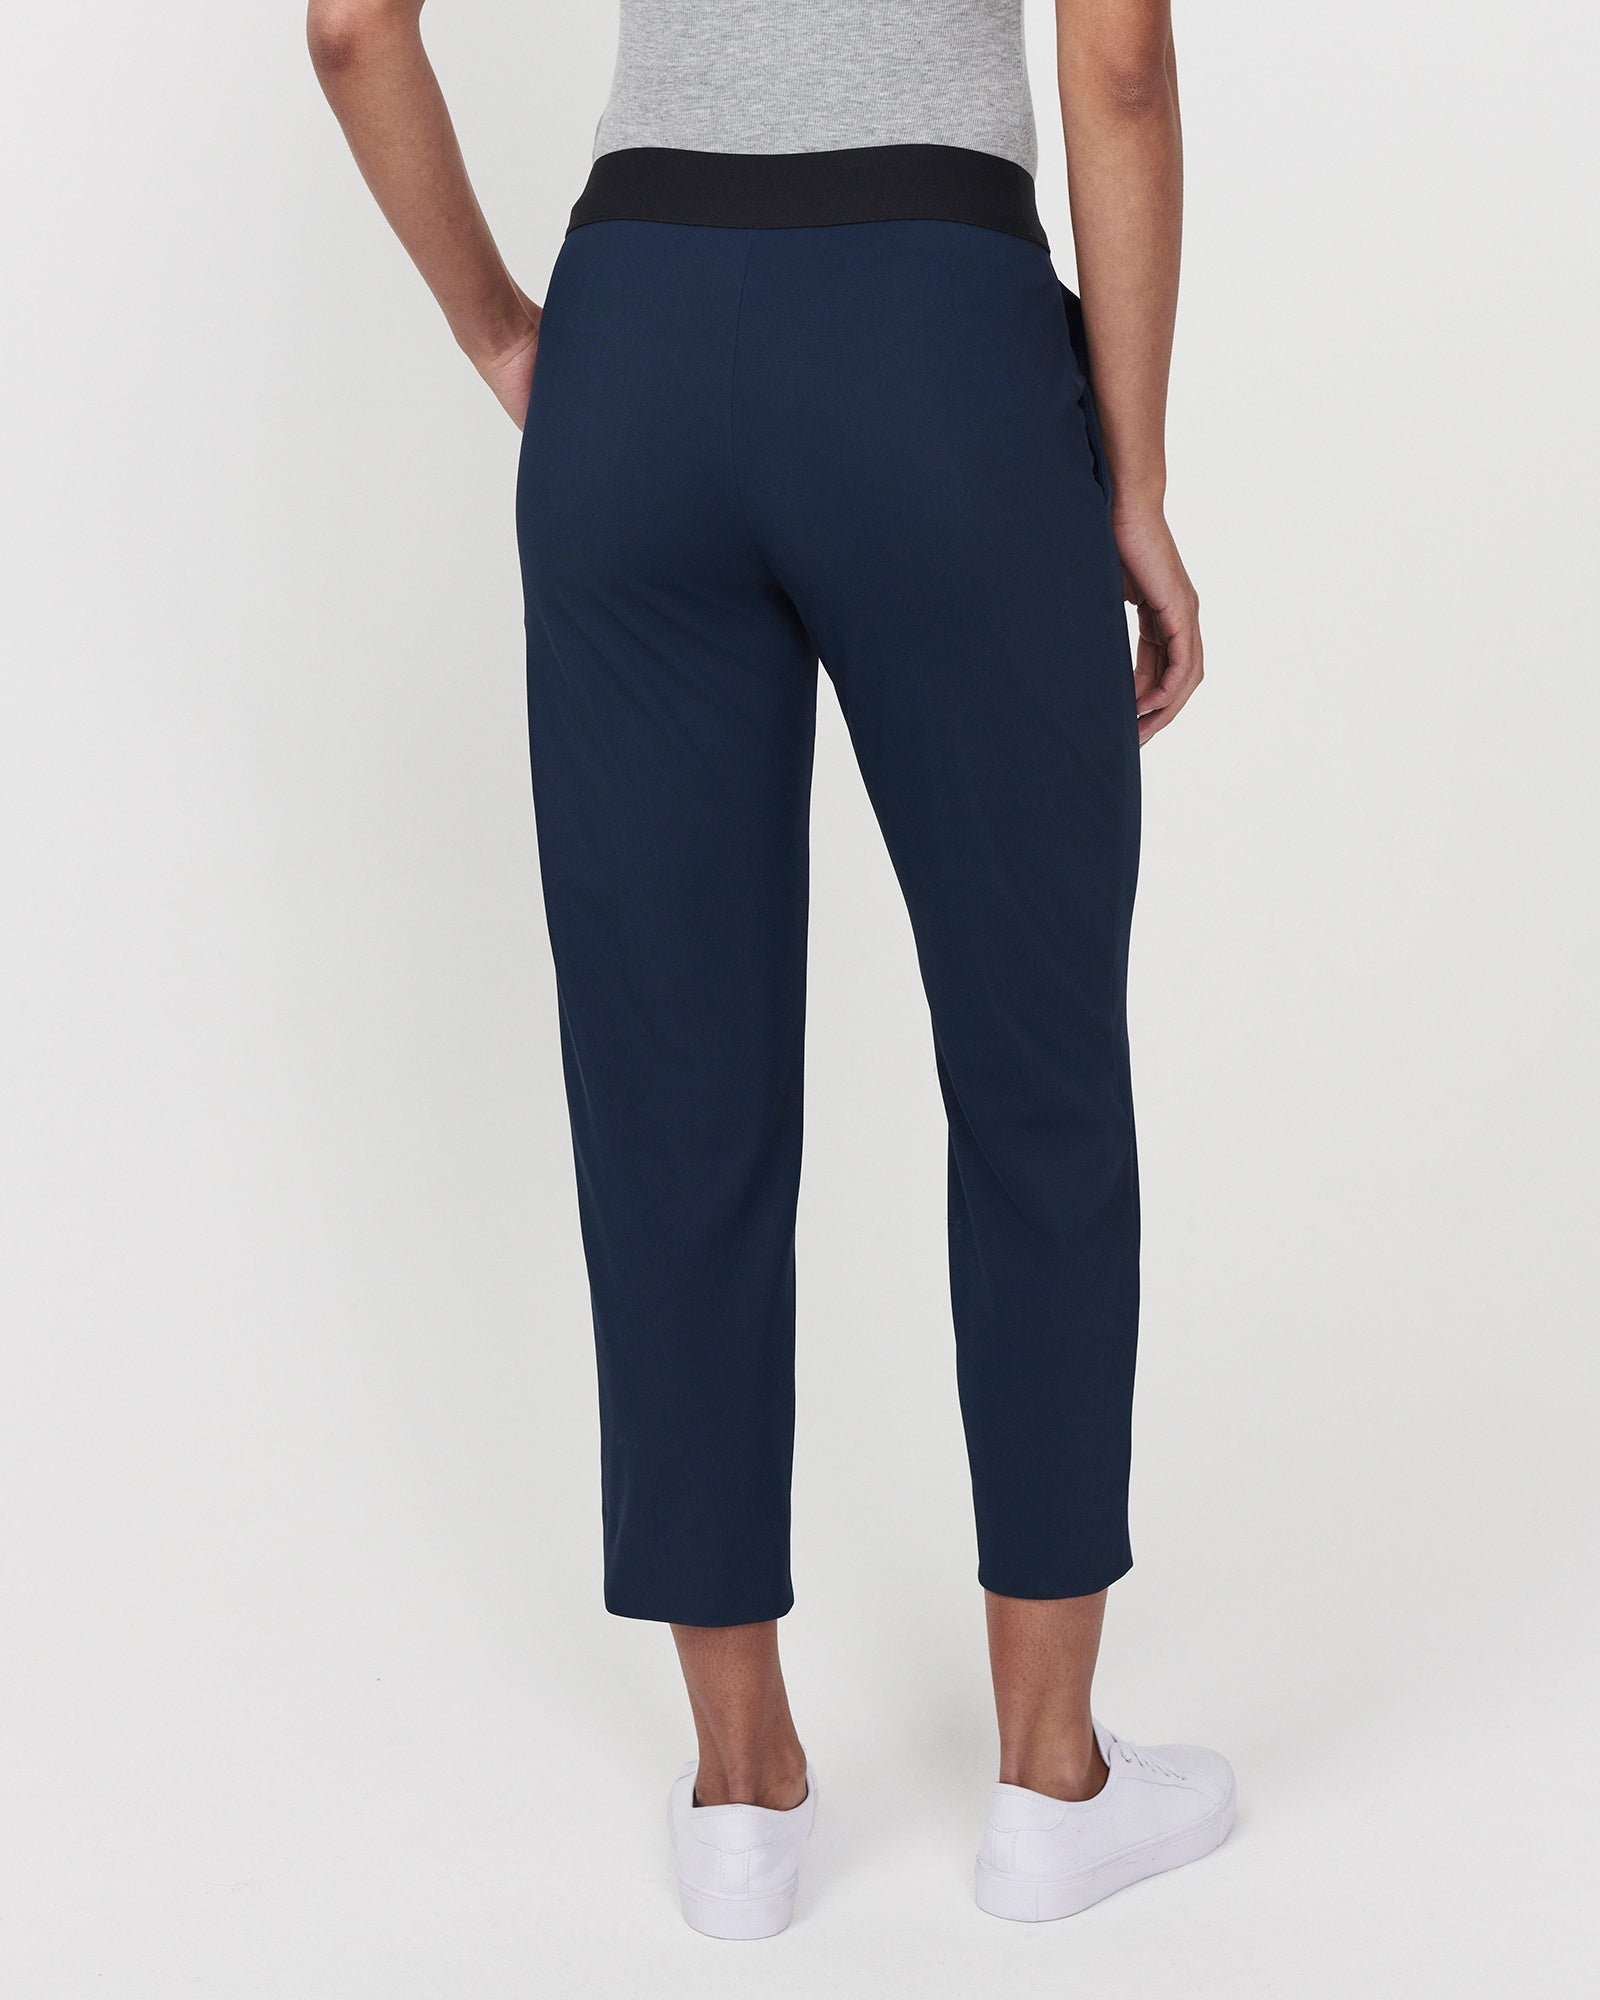 Freedom Pant Regatta Navy